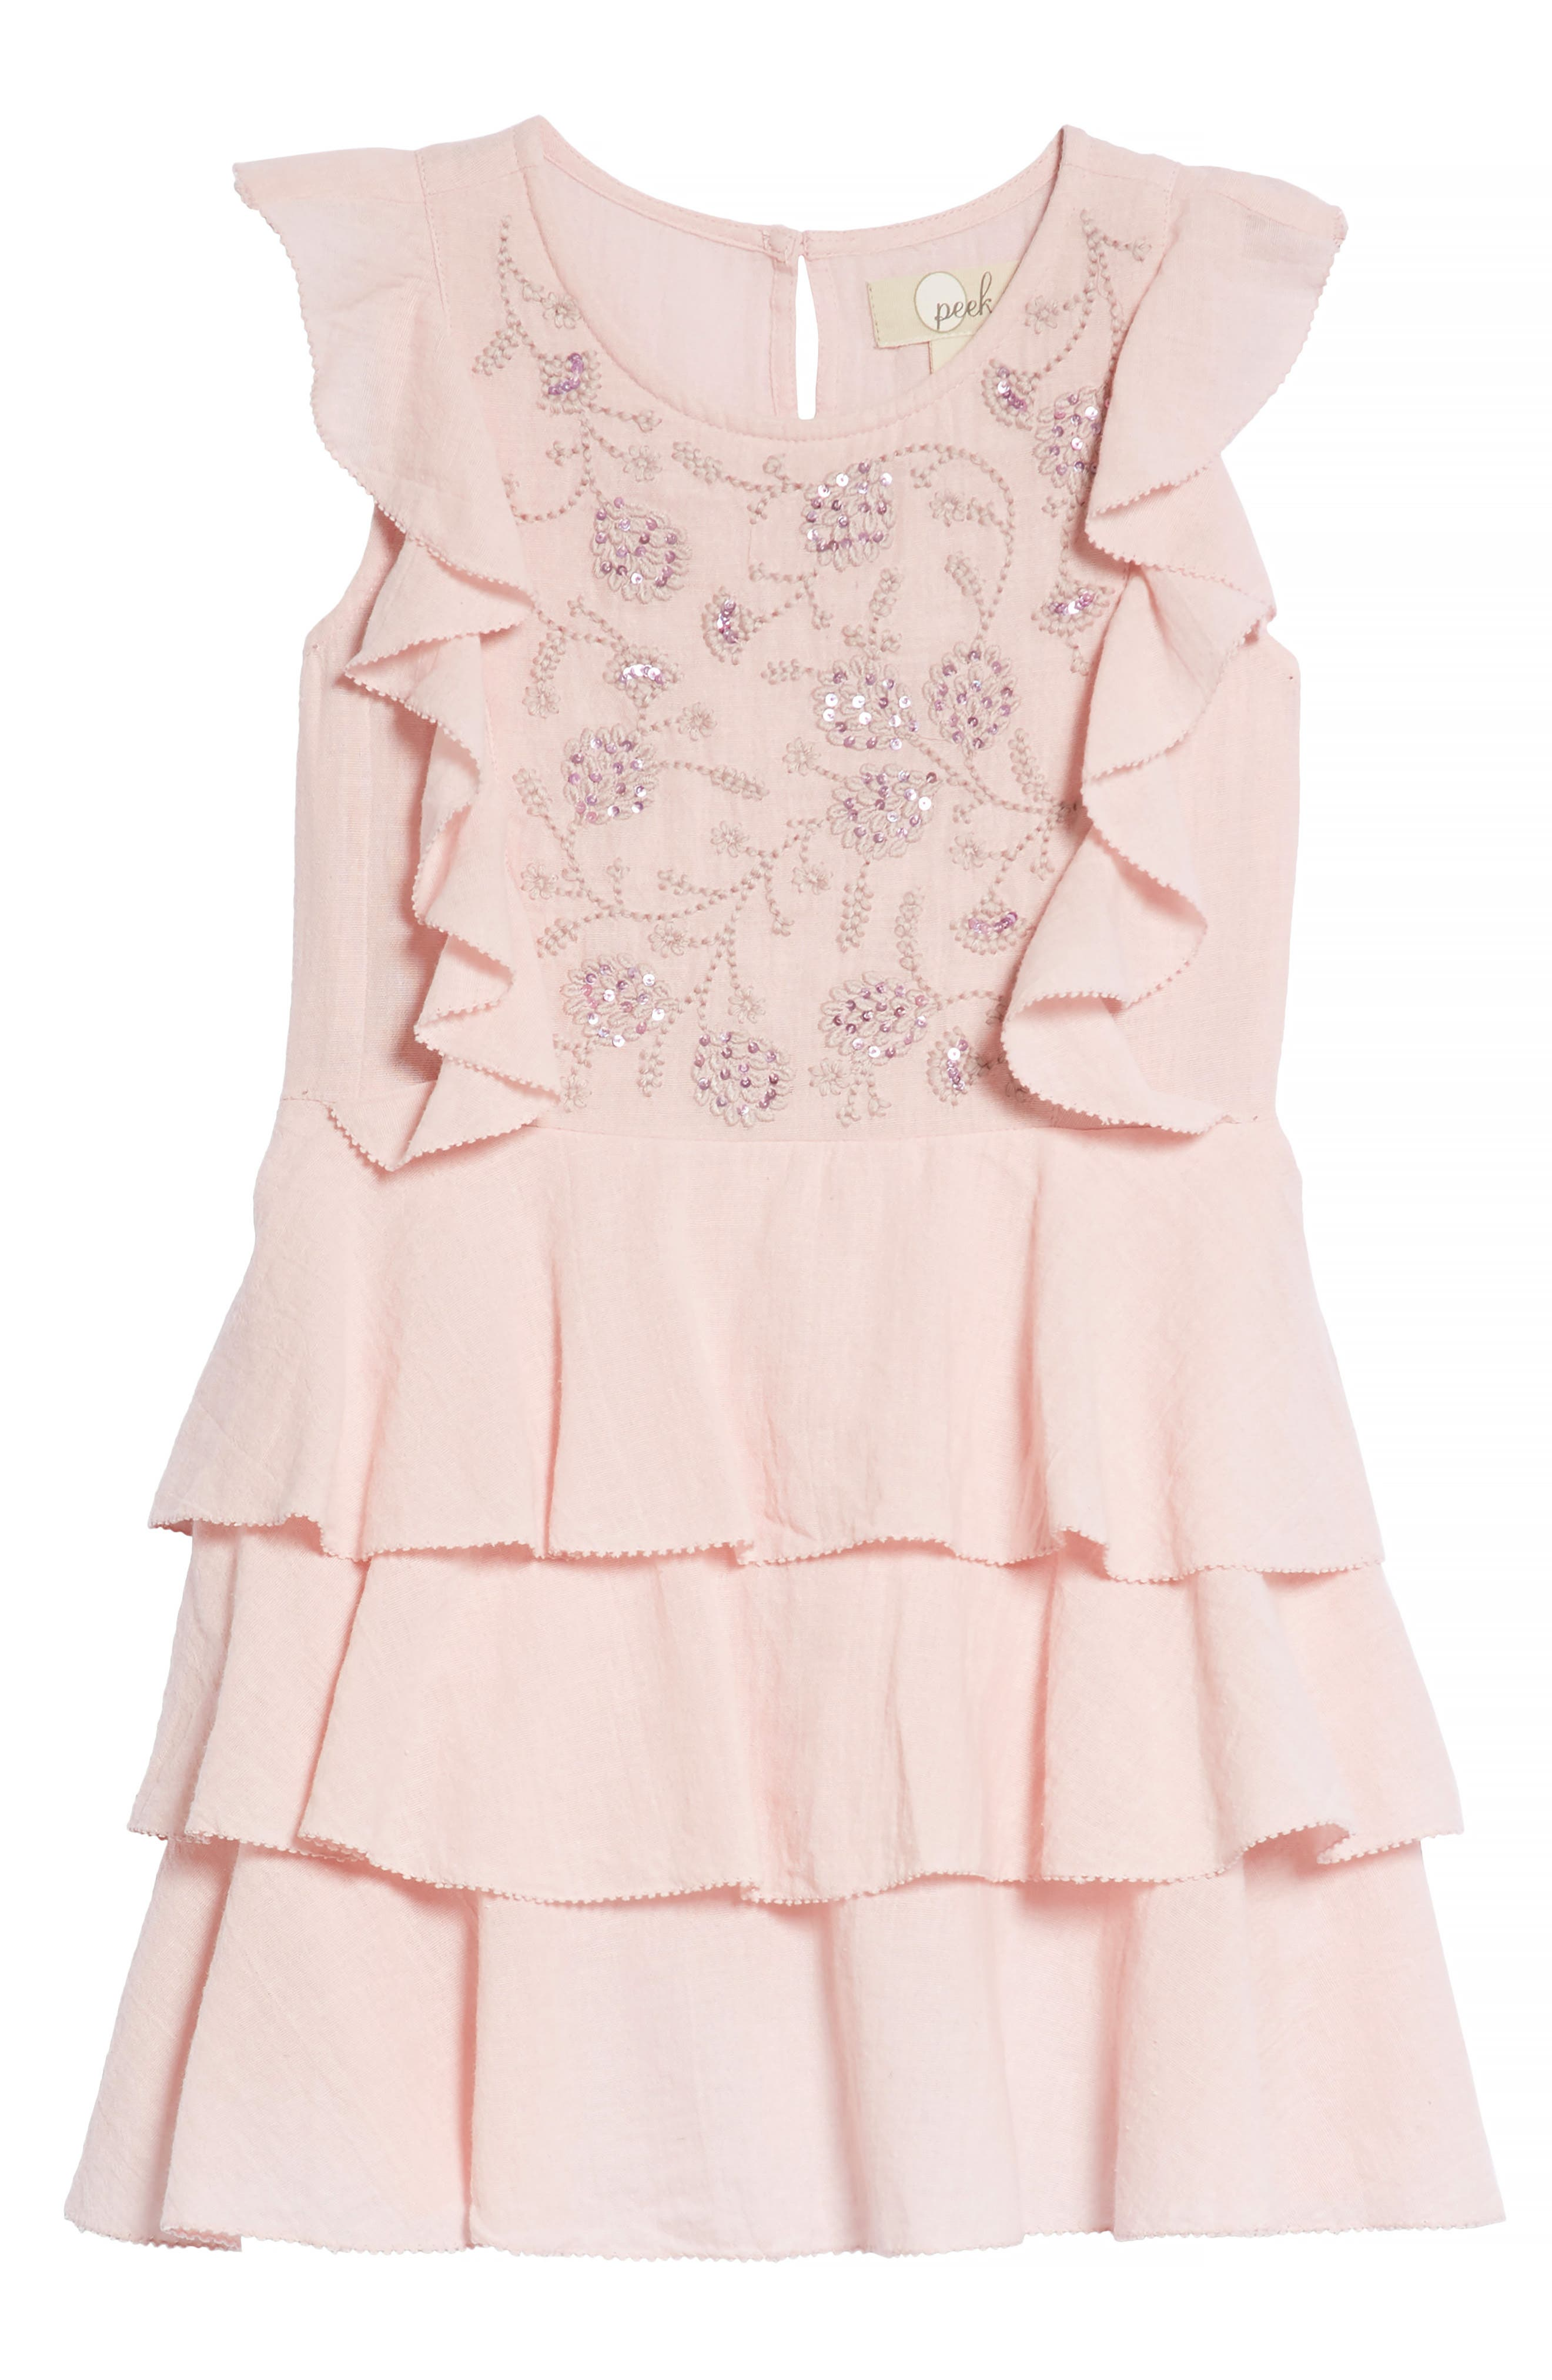 Madeline Tiered Dress,                         Main,                         color, Blush